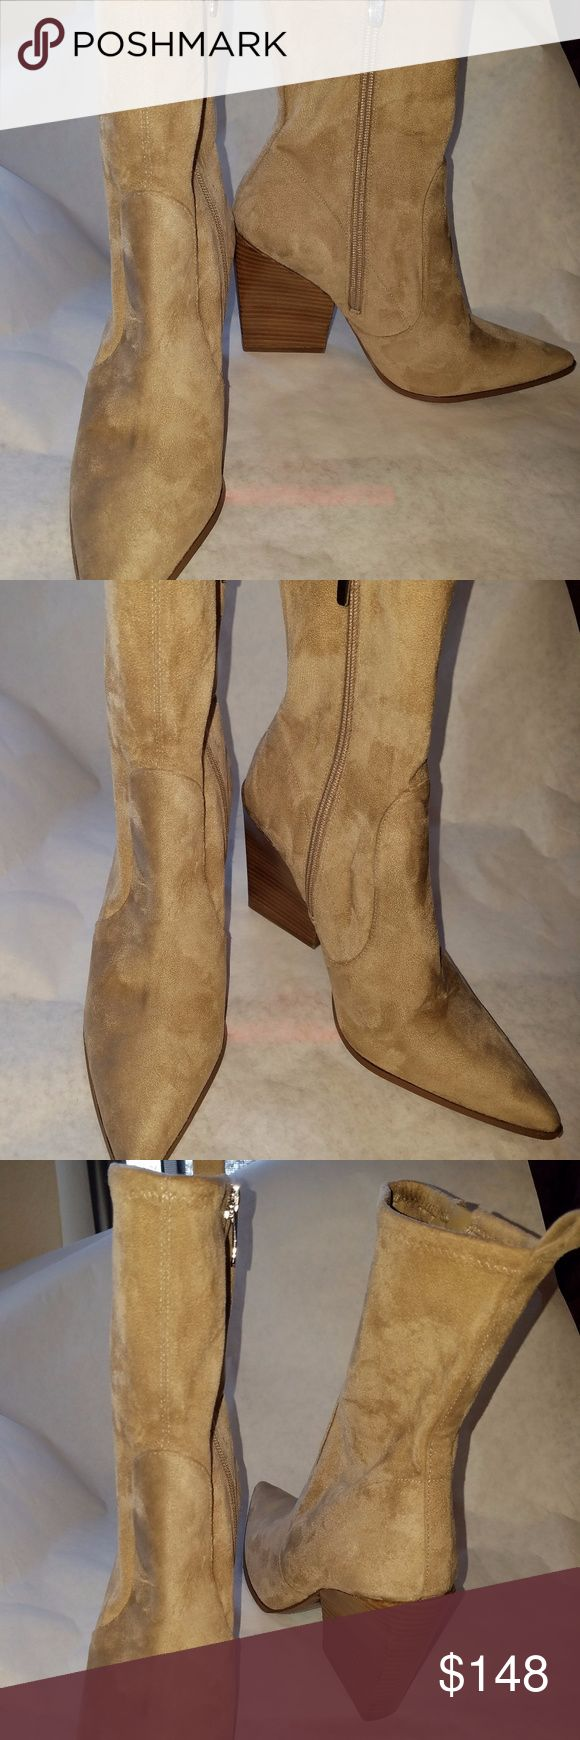 """Kendall +Kylie Fallyn Bootie 8 womens Tan FALLYN BOOTIE   KENDALL + KYLIE  SIZE  8  COLOR  New Camel    New Camel  Faux suede upper with man made sole Side zip closure Heel measures approx 4"""" H Revolve Style No. KENR-WZ65 Manufacturer Style No. KKFALLYN great condition have some wear on soles Kendall & Kylie Shoes Ankle Boots & Booties"""